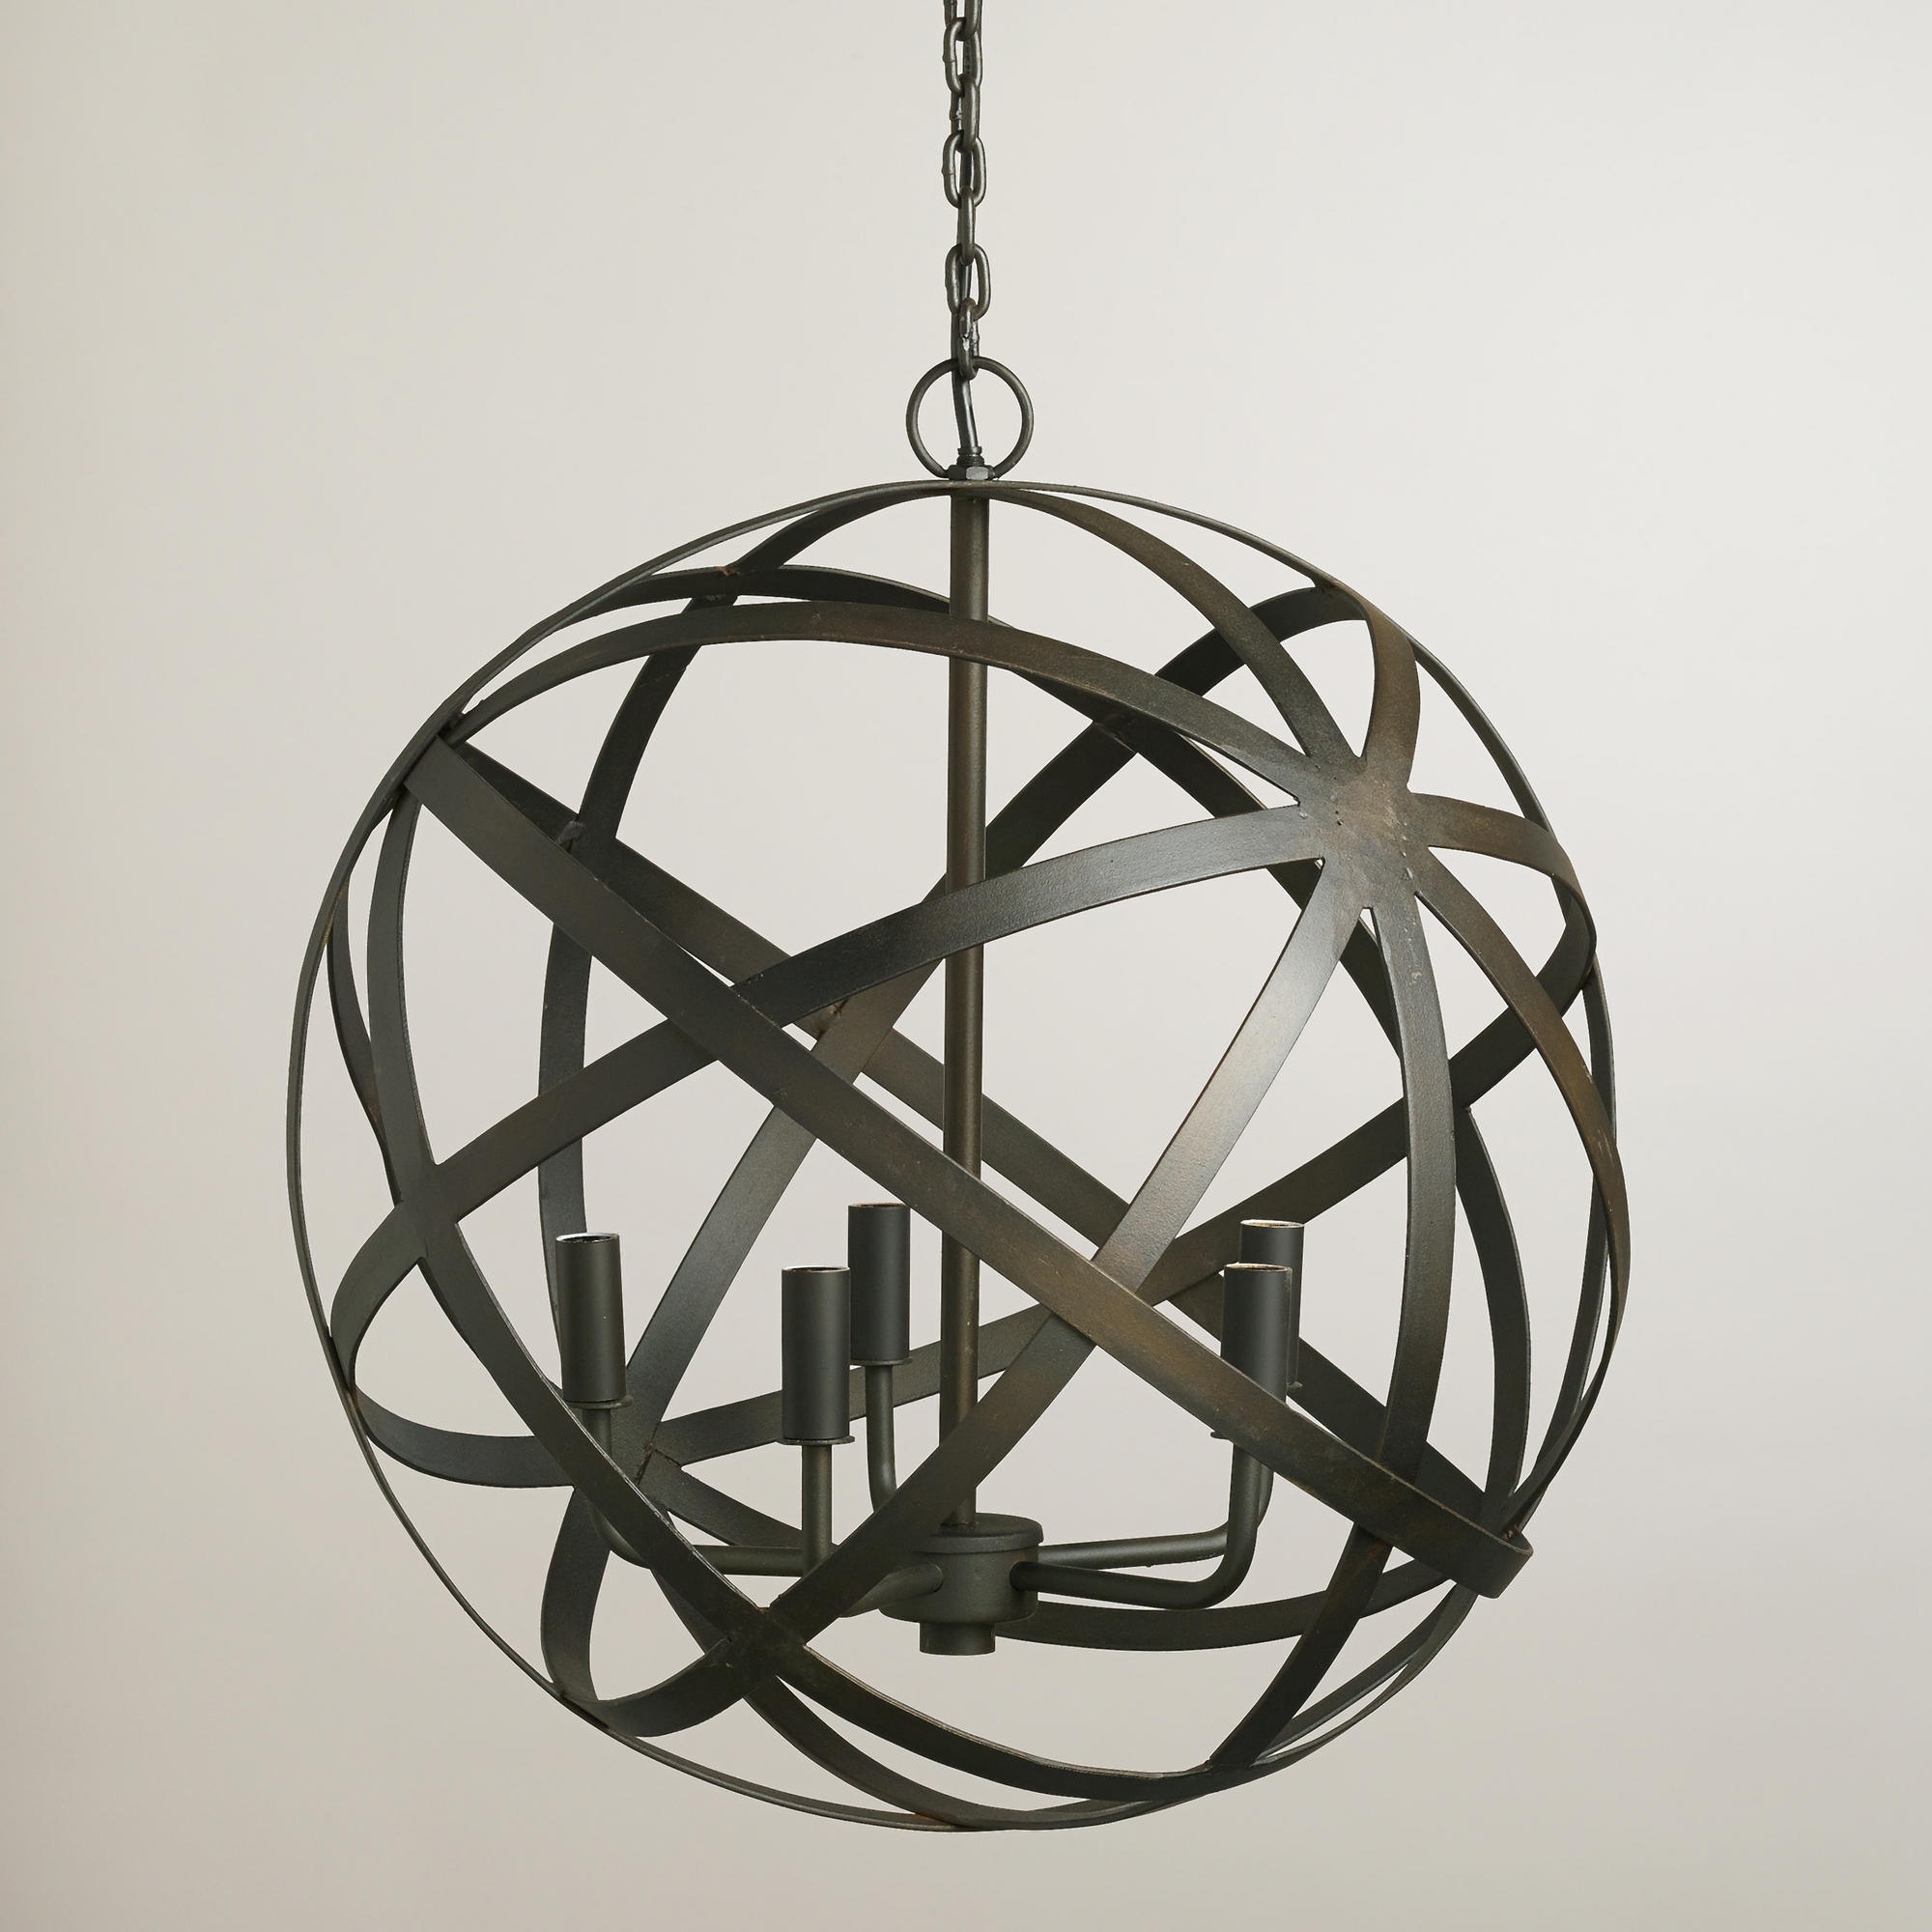 Alluring Unique Hanging Lights With Tree Dining Pendant Lamp Intended For Metal Ball Candle Chandeliers (Image 1 of 25)